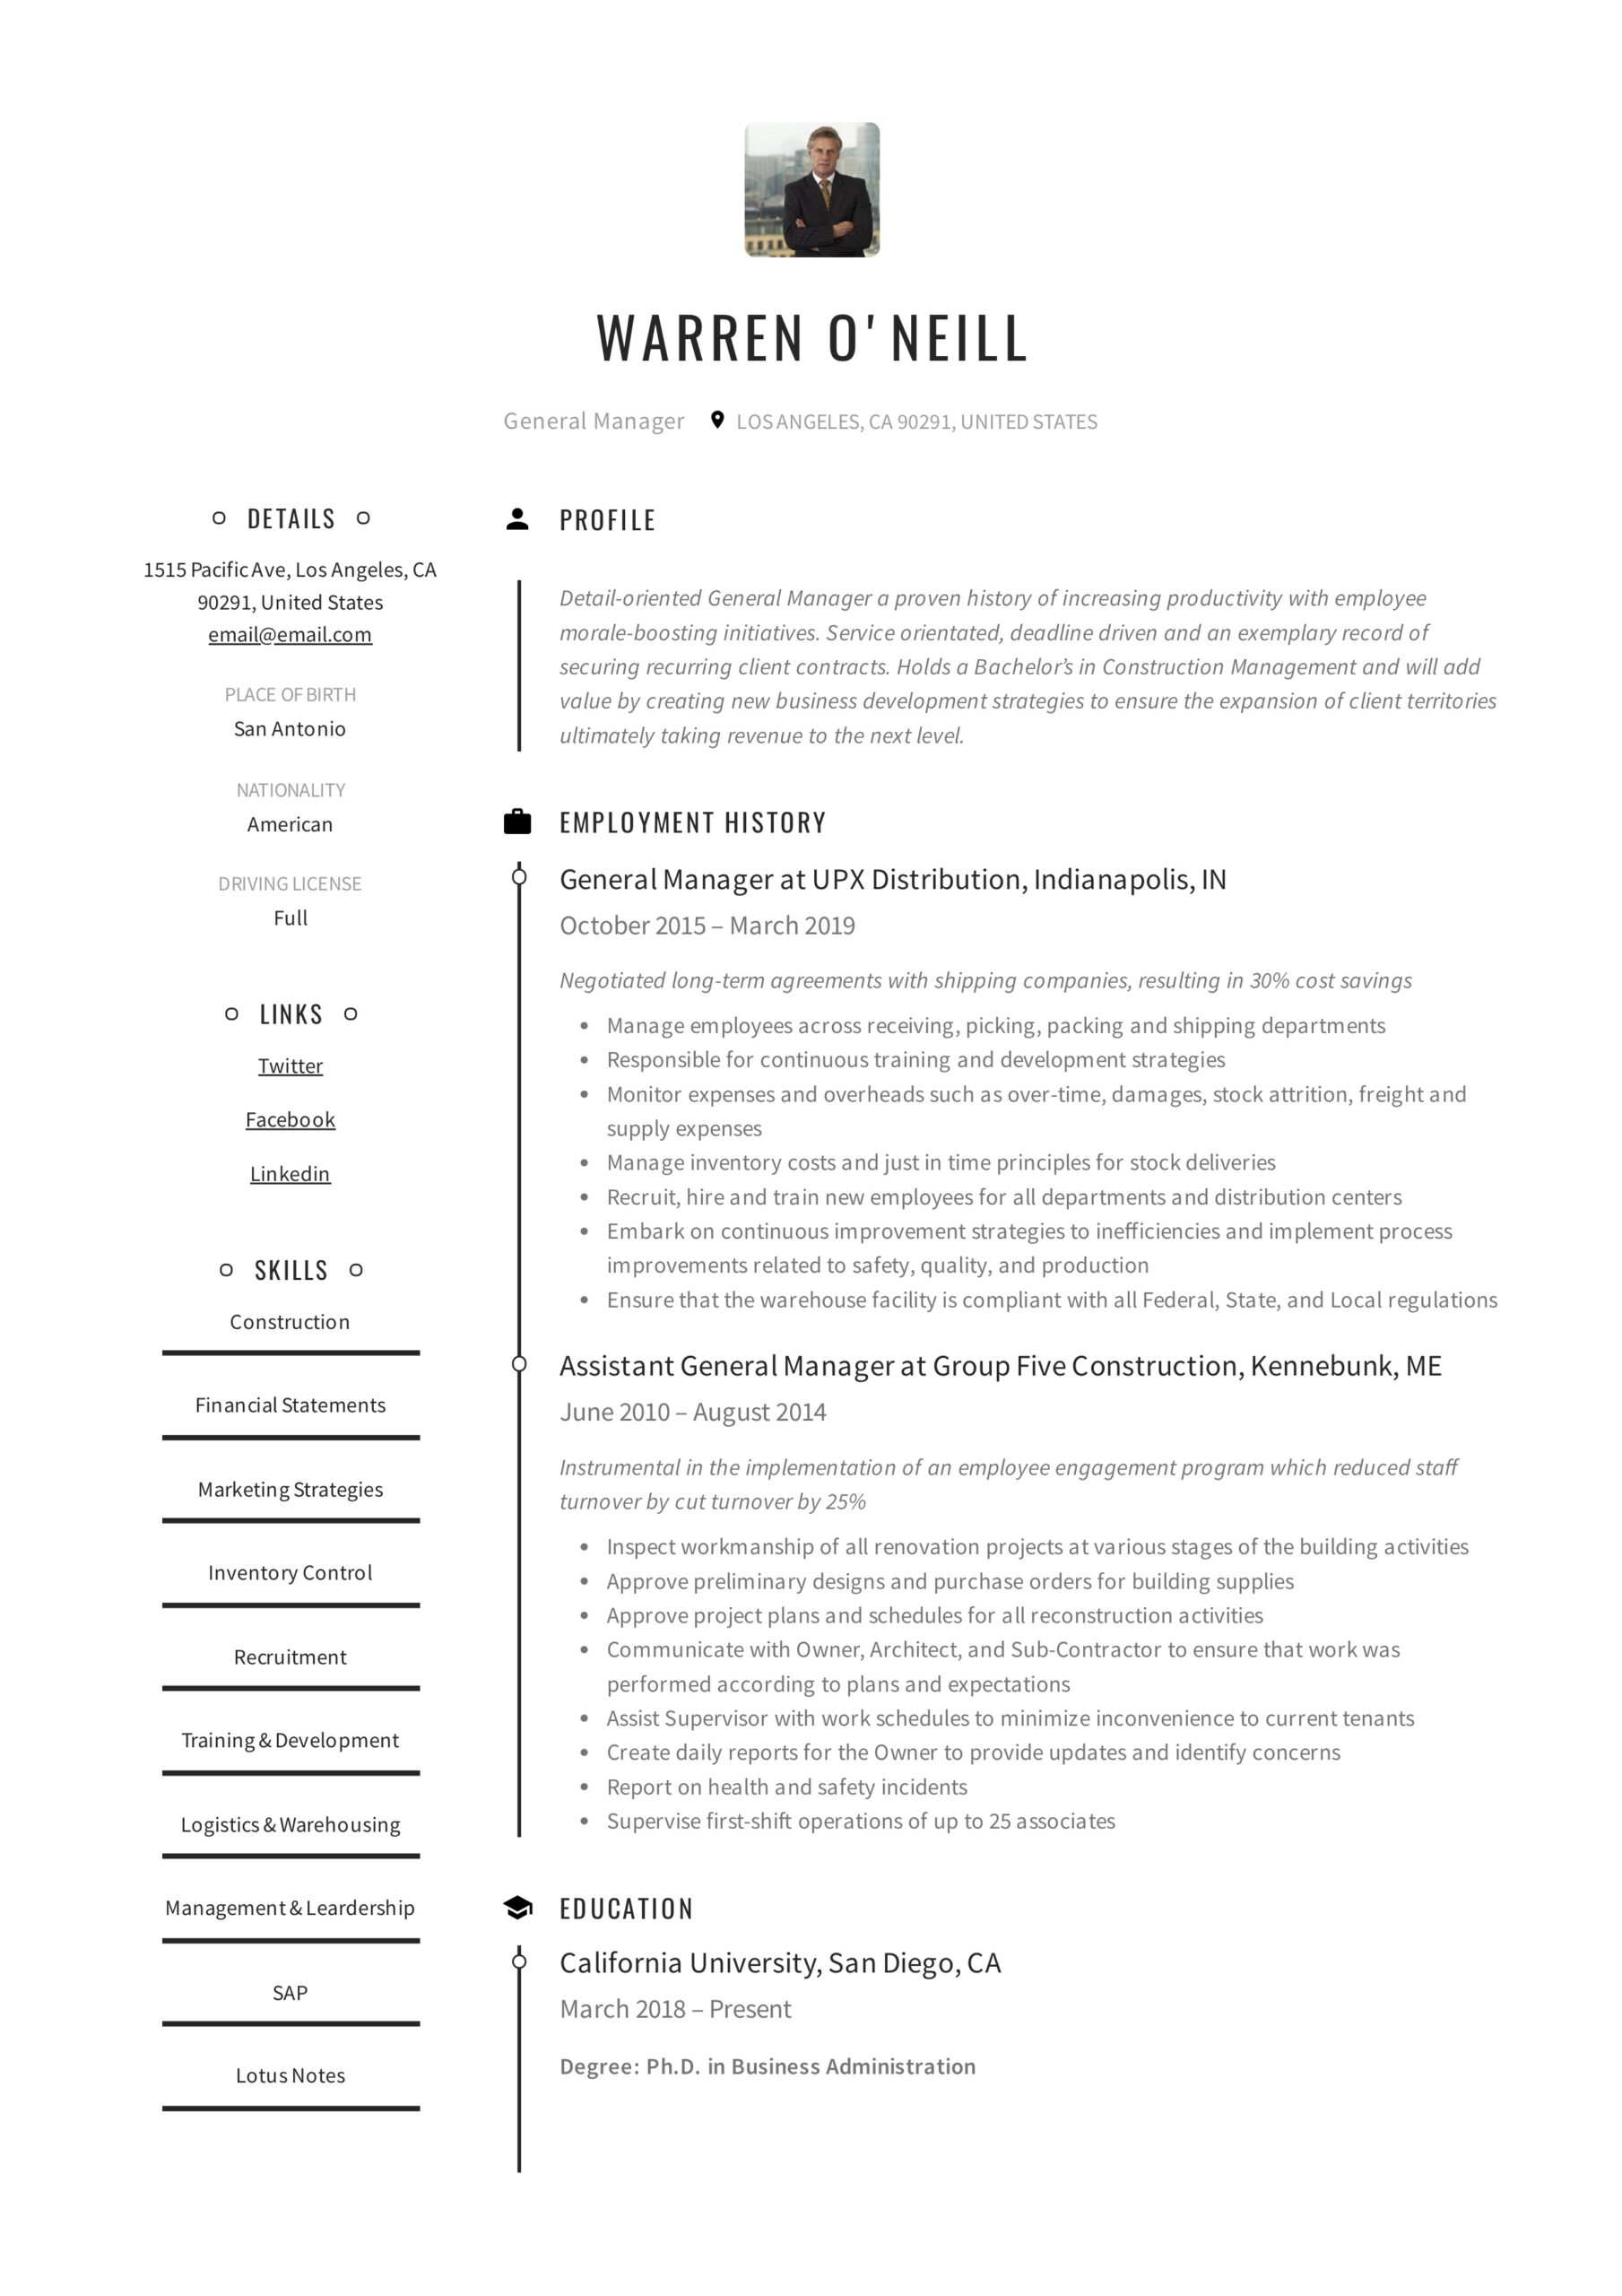 general manager resume writing guide examples pdf service delivery executive neill Resume Service Delivery Executive Resume